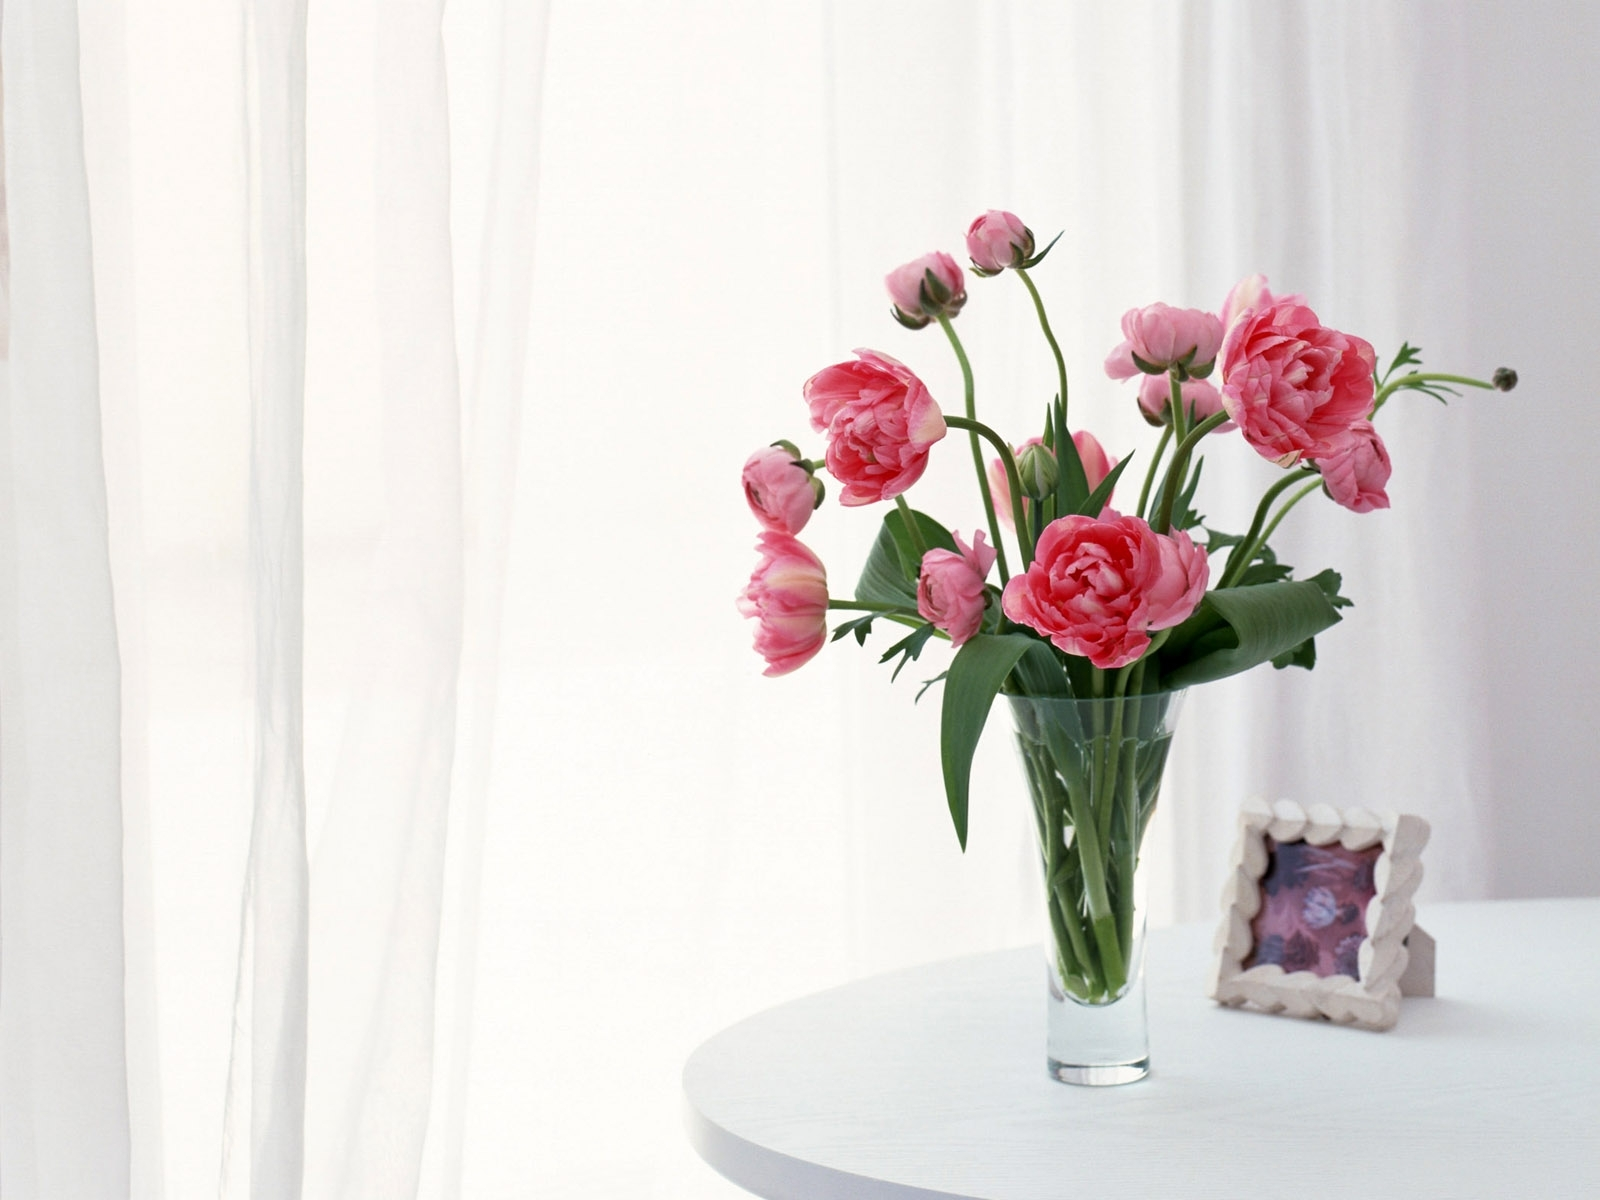 Vase of Roses on Table Roses Tulips Vase Flowers